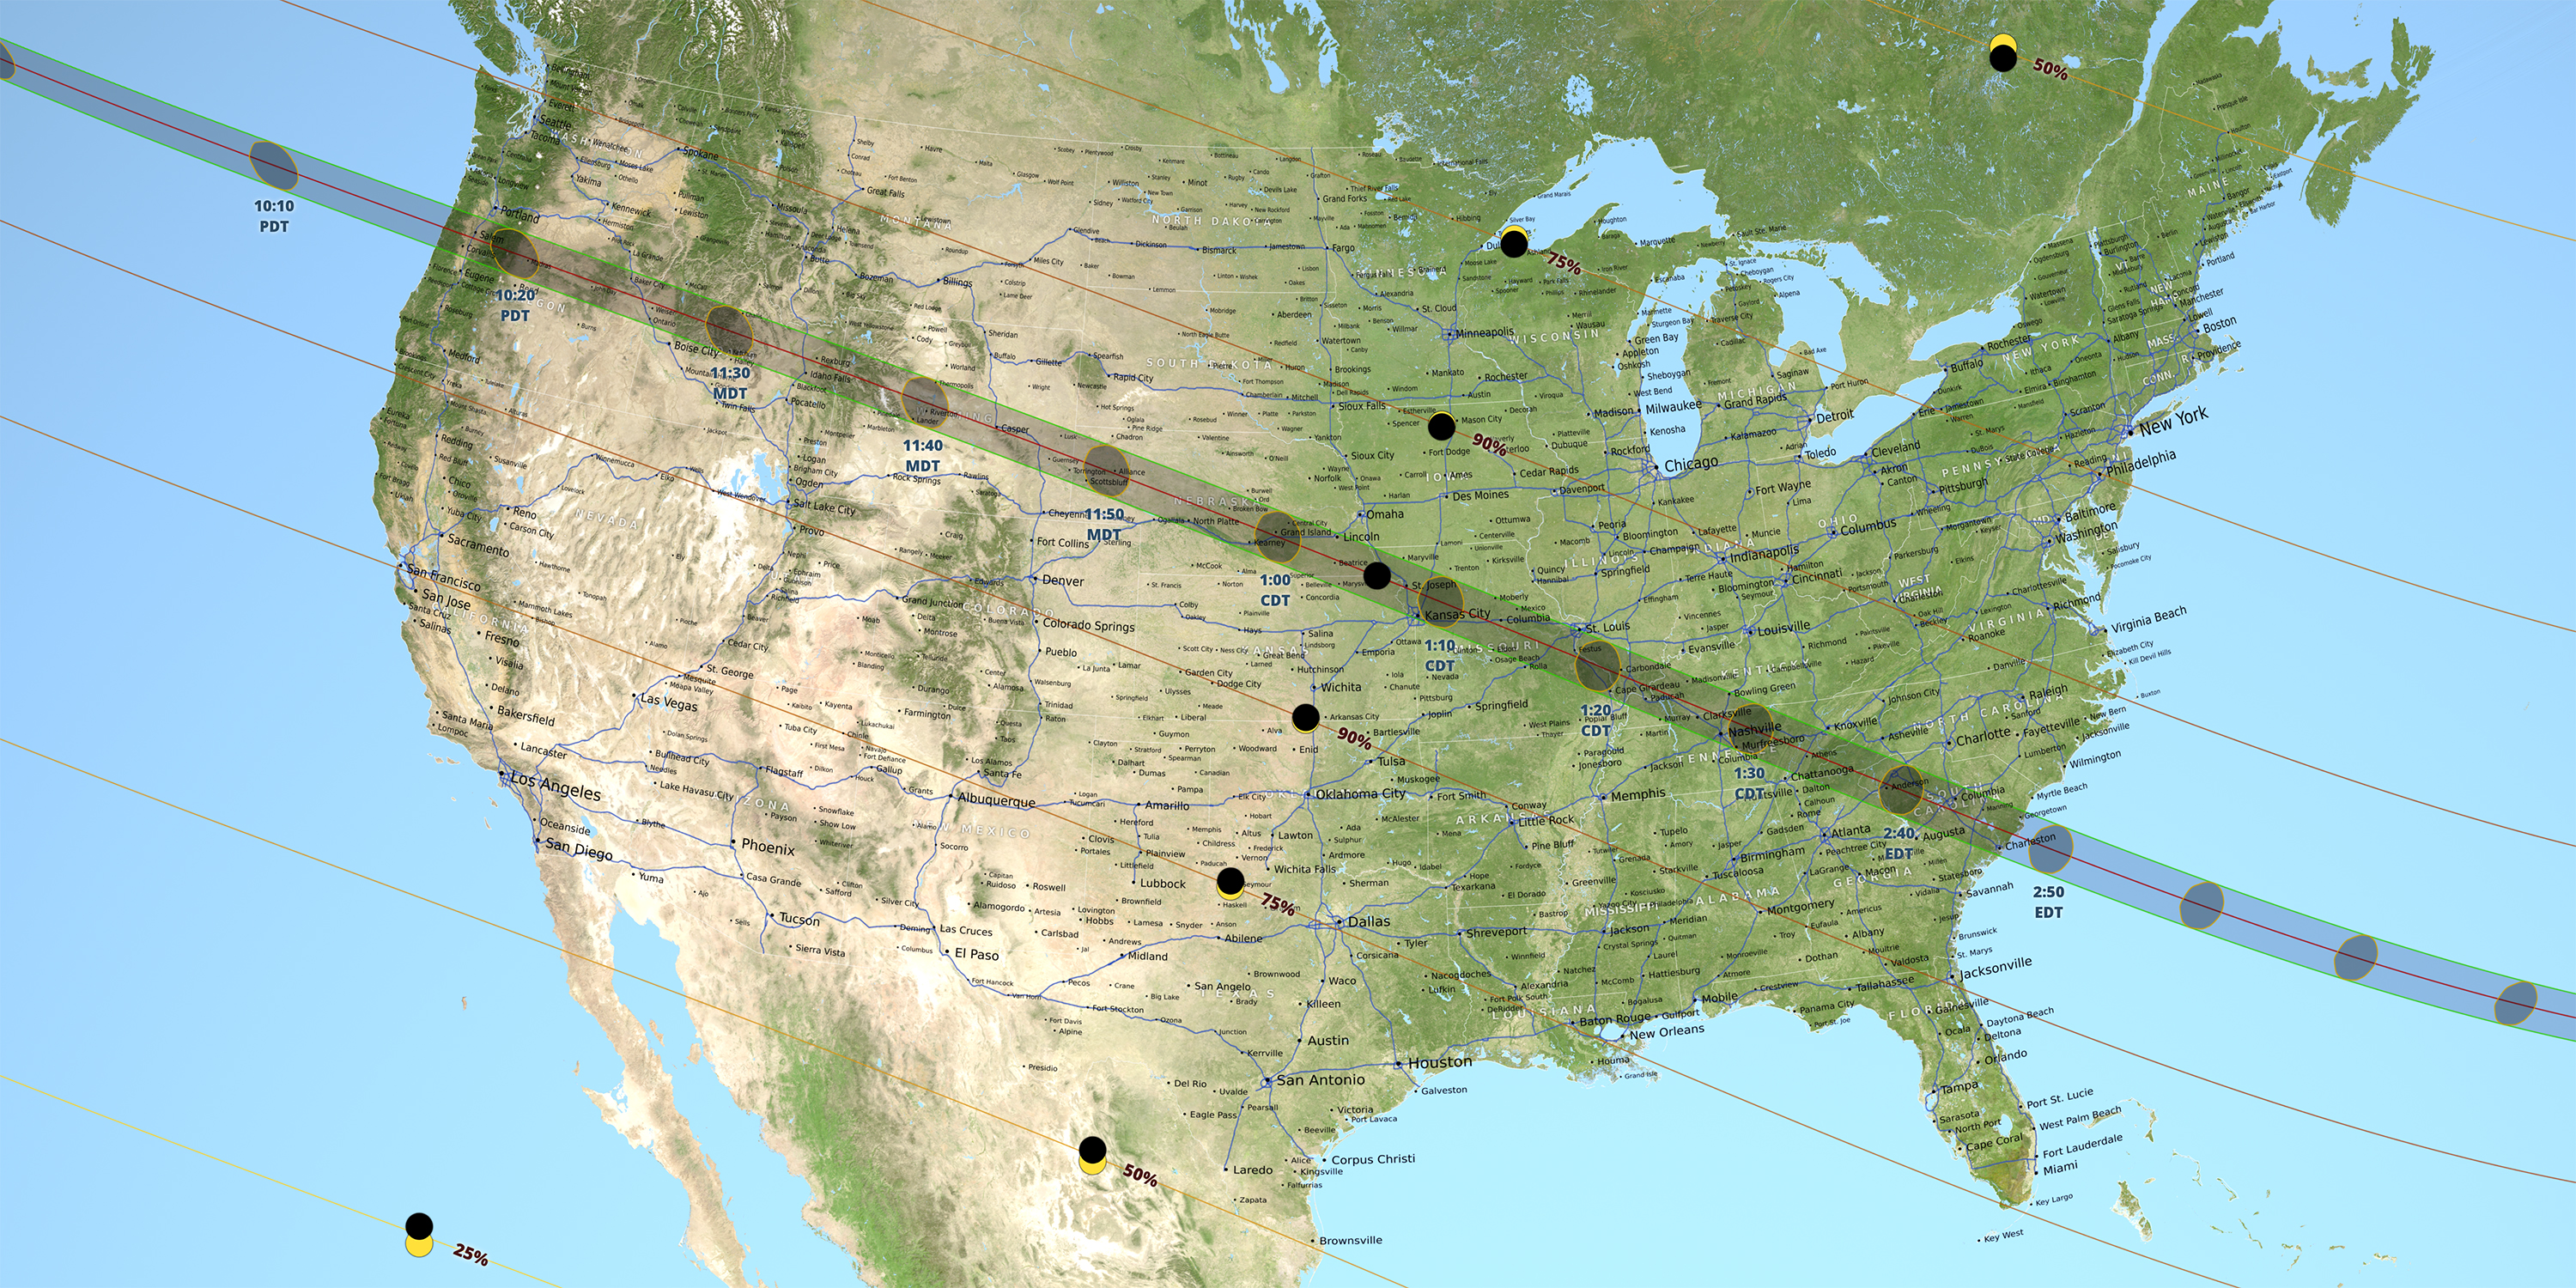 Solar Eclipse Map Nasa Moon Data Provides More Accurate 2017 Eclipse Path | NASA